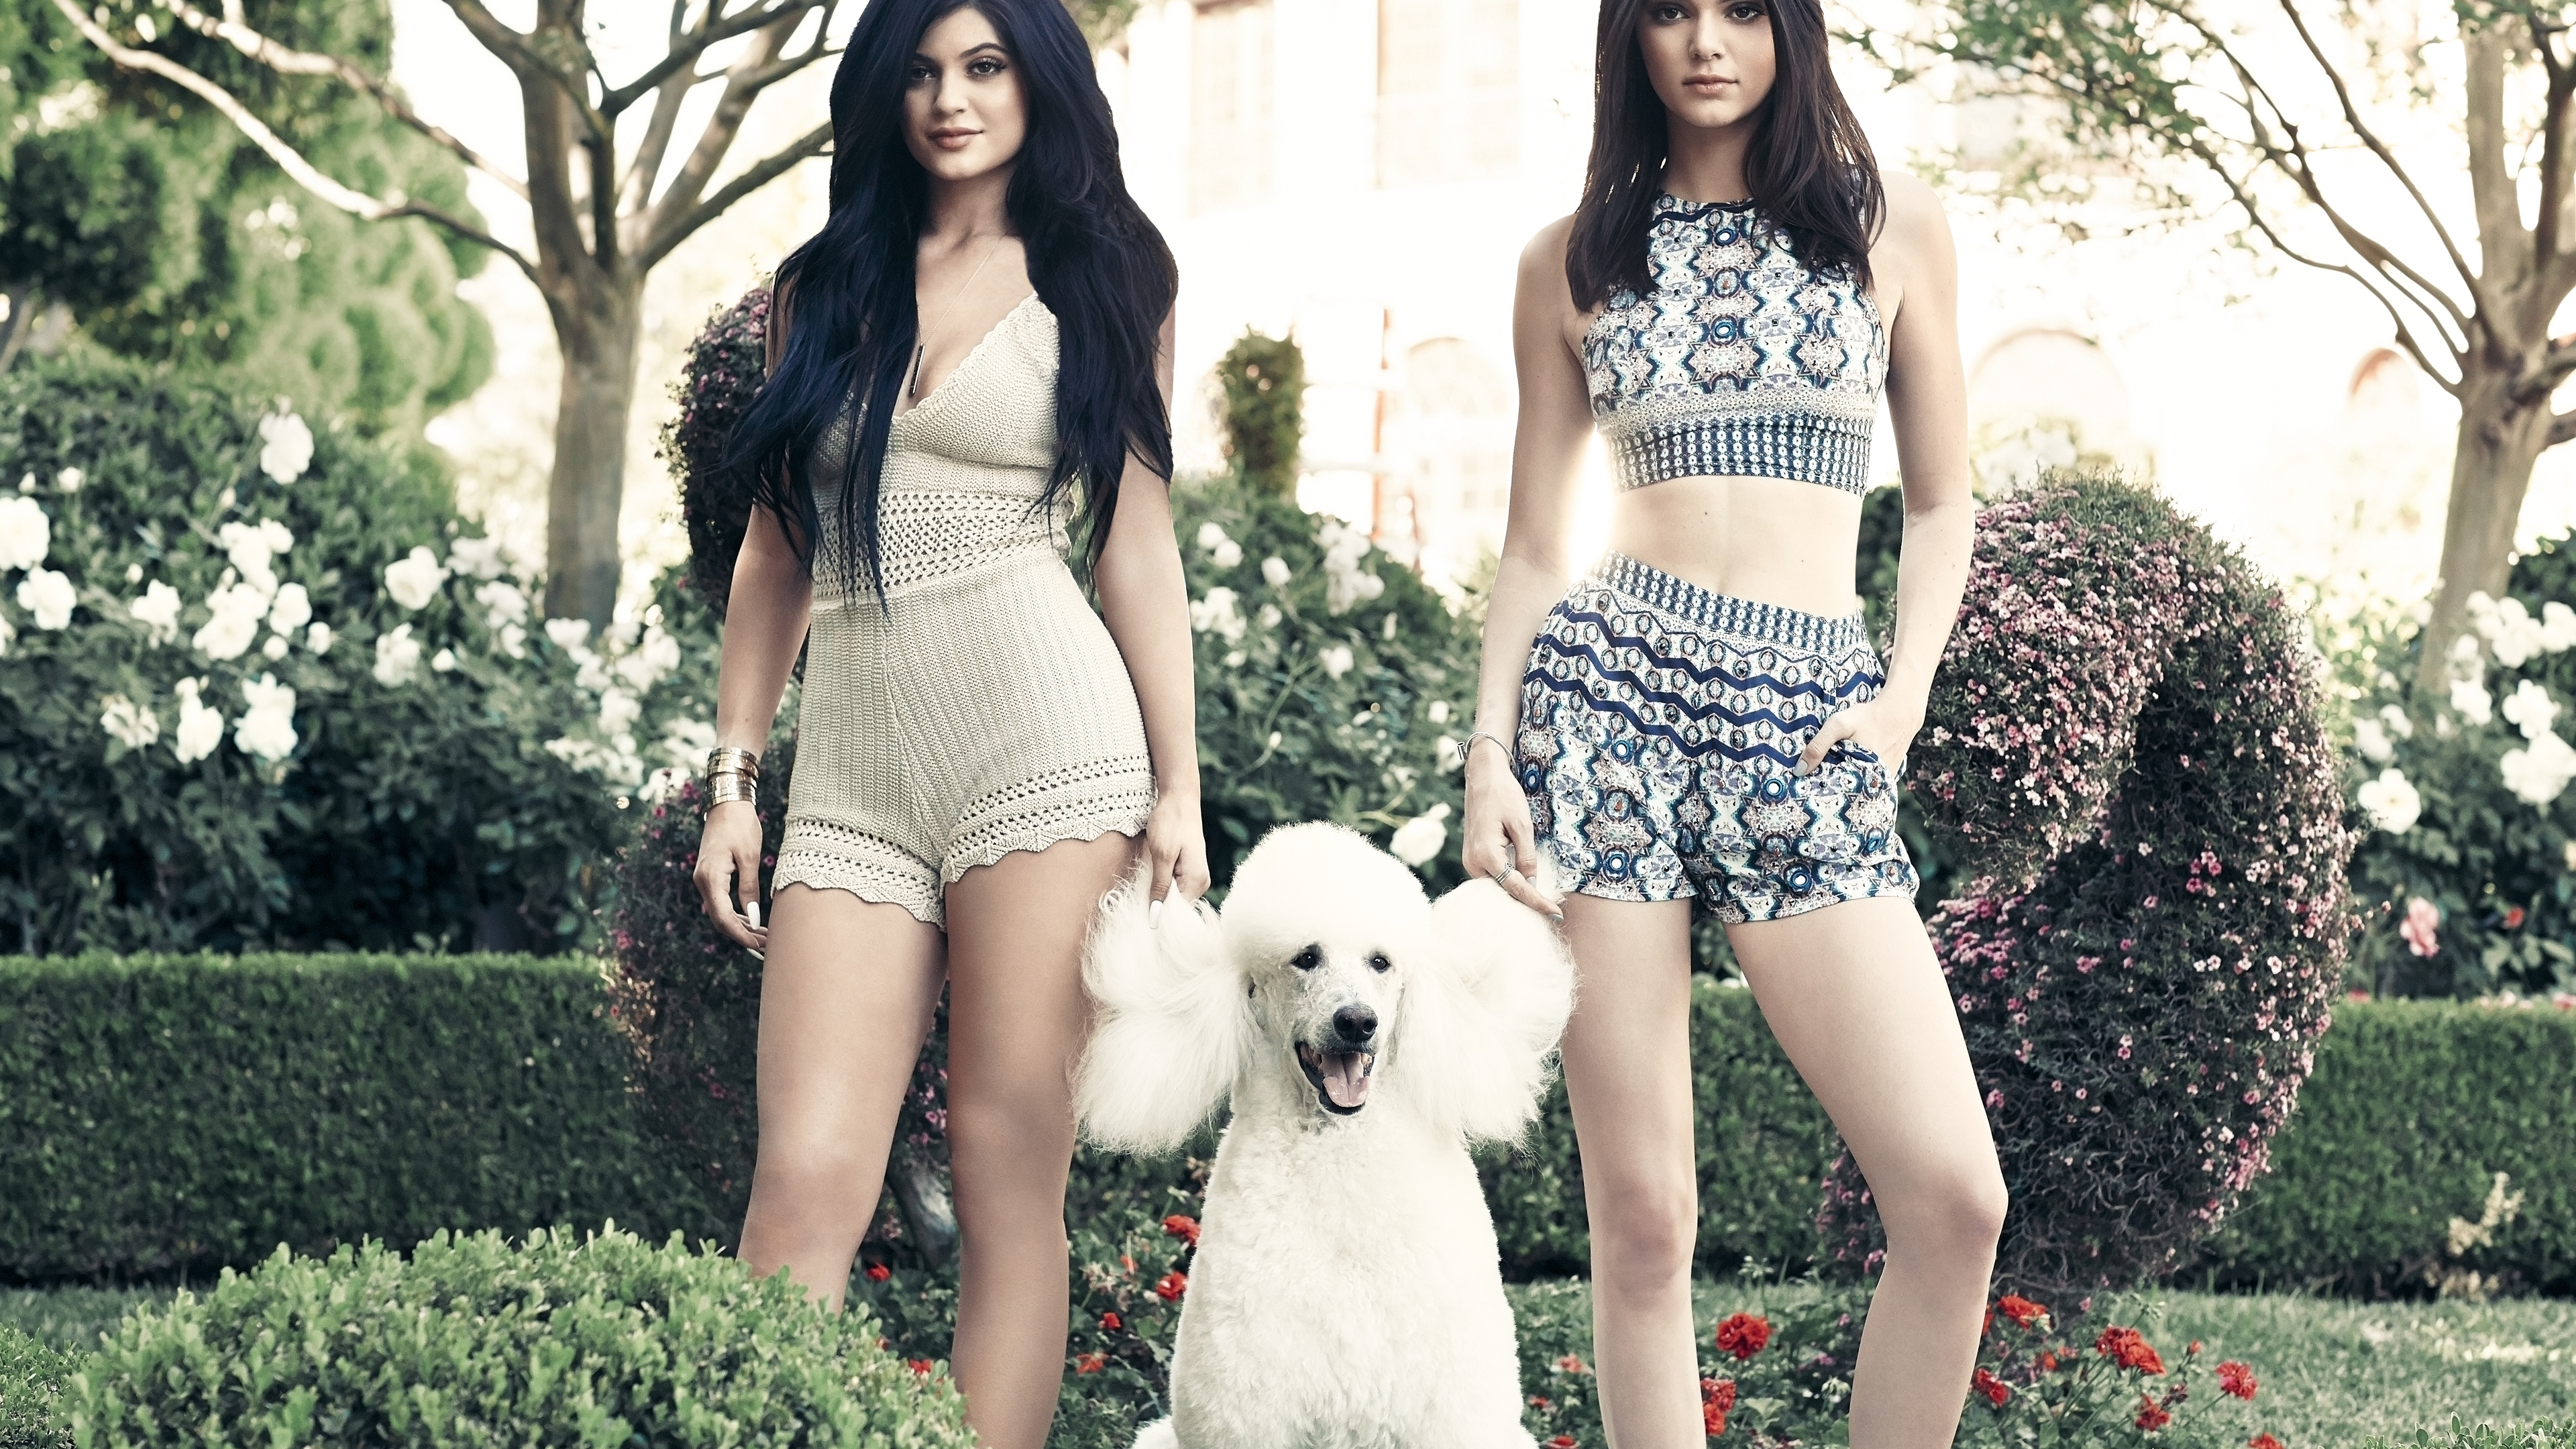 kylie and kendall jenner pacsun holiday collection 2019 1536863120 - Kylie And Kendall Jenner PacSun Holiday Collection 2019 - model wallpapers, kylie jenner wallpapers, kendall jenner wallpapers, hd-wallpapers, girls wallpapers, celebrities wallpapers, 5k wallpapers, 4k-wallpapers